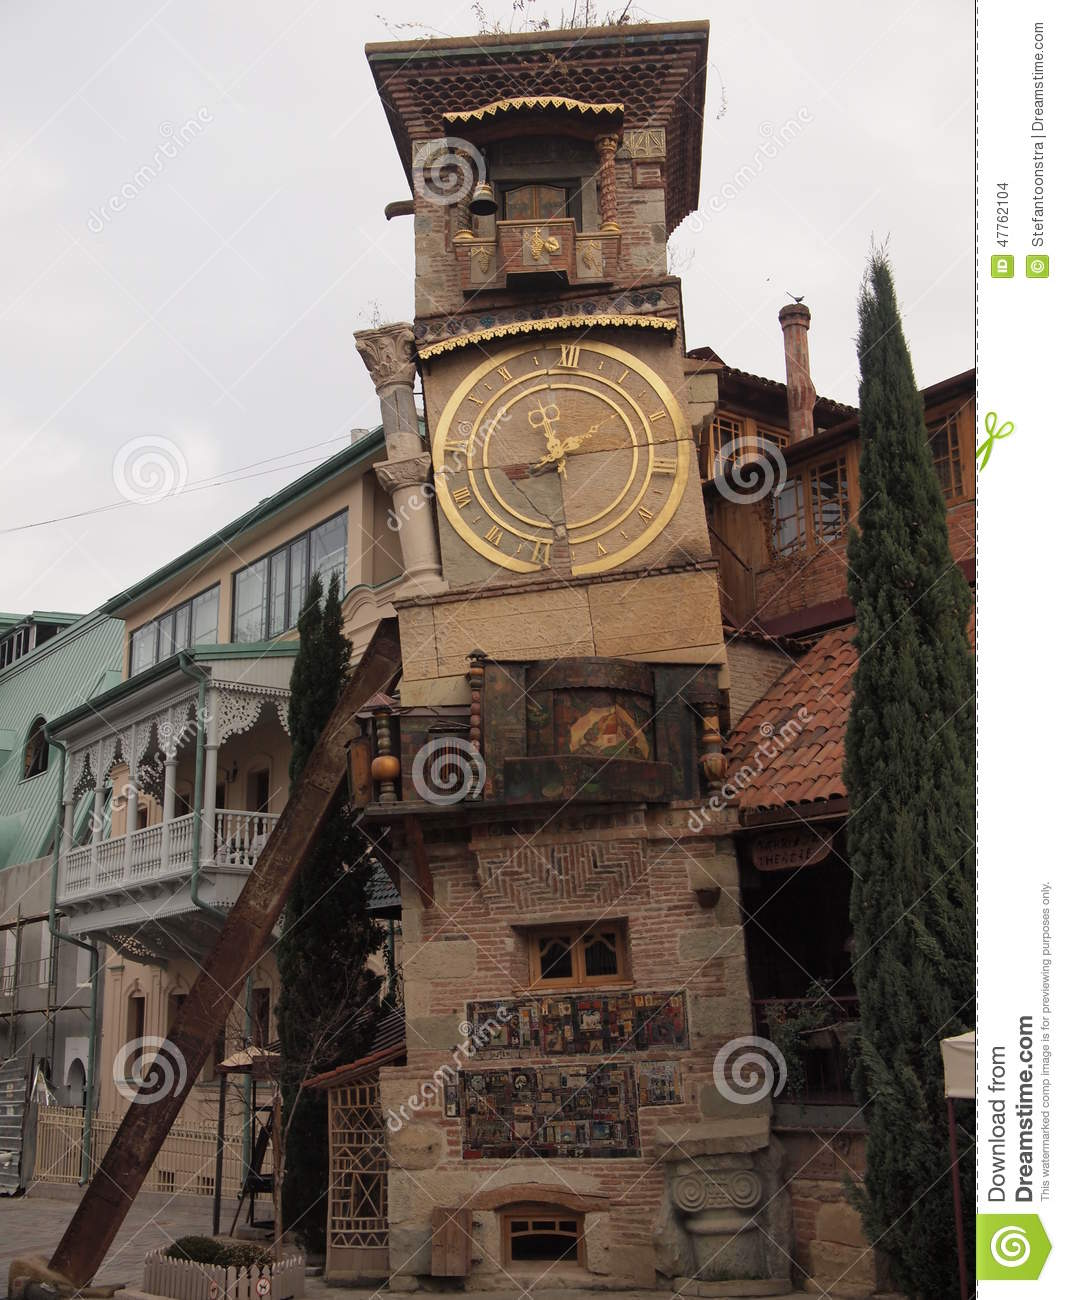 Clock Tower Tbilisi, Leaning Clock Tower (Tbilisi, Georgia) Stock Photo - Image: 47762104